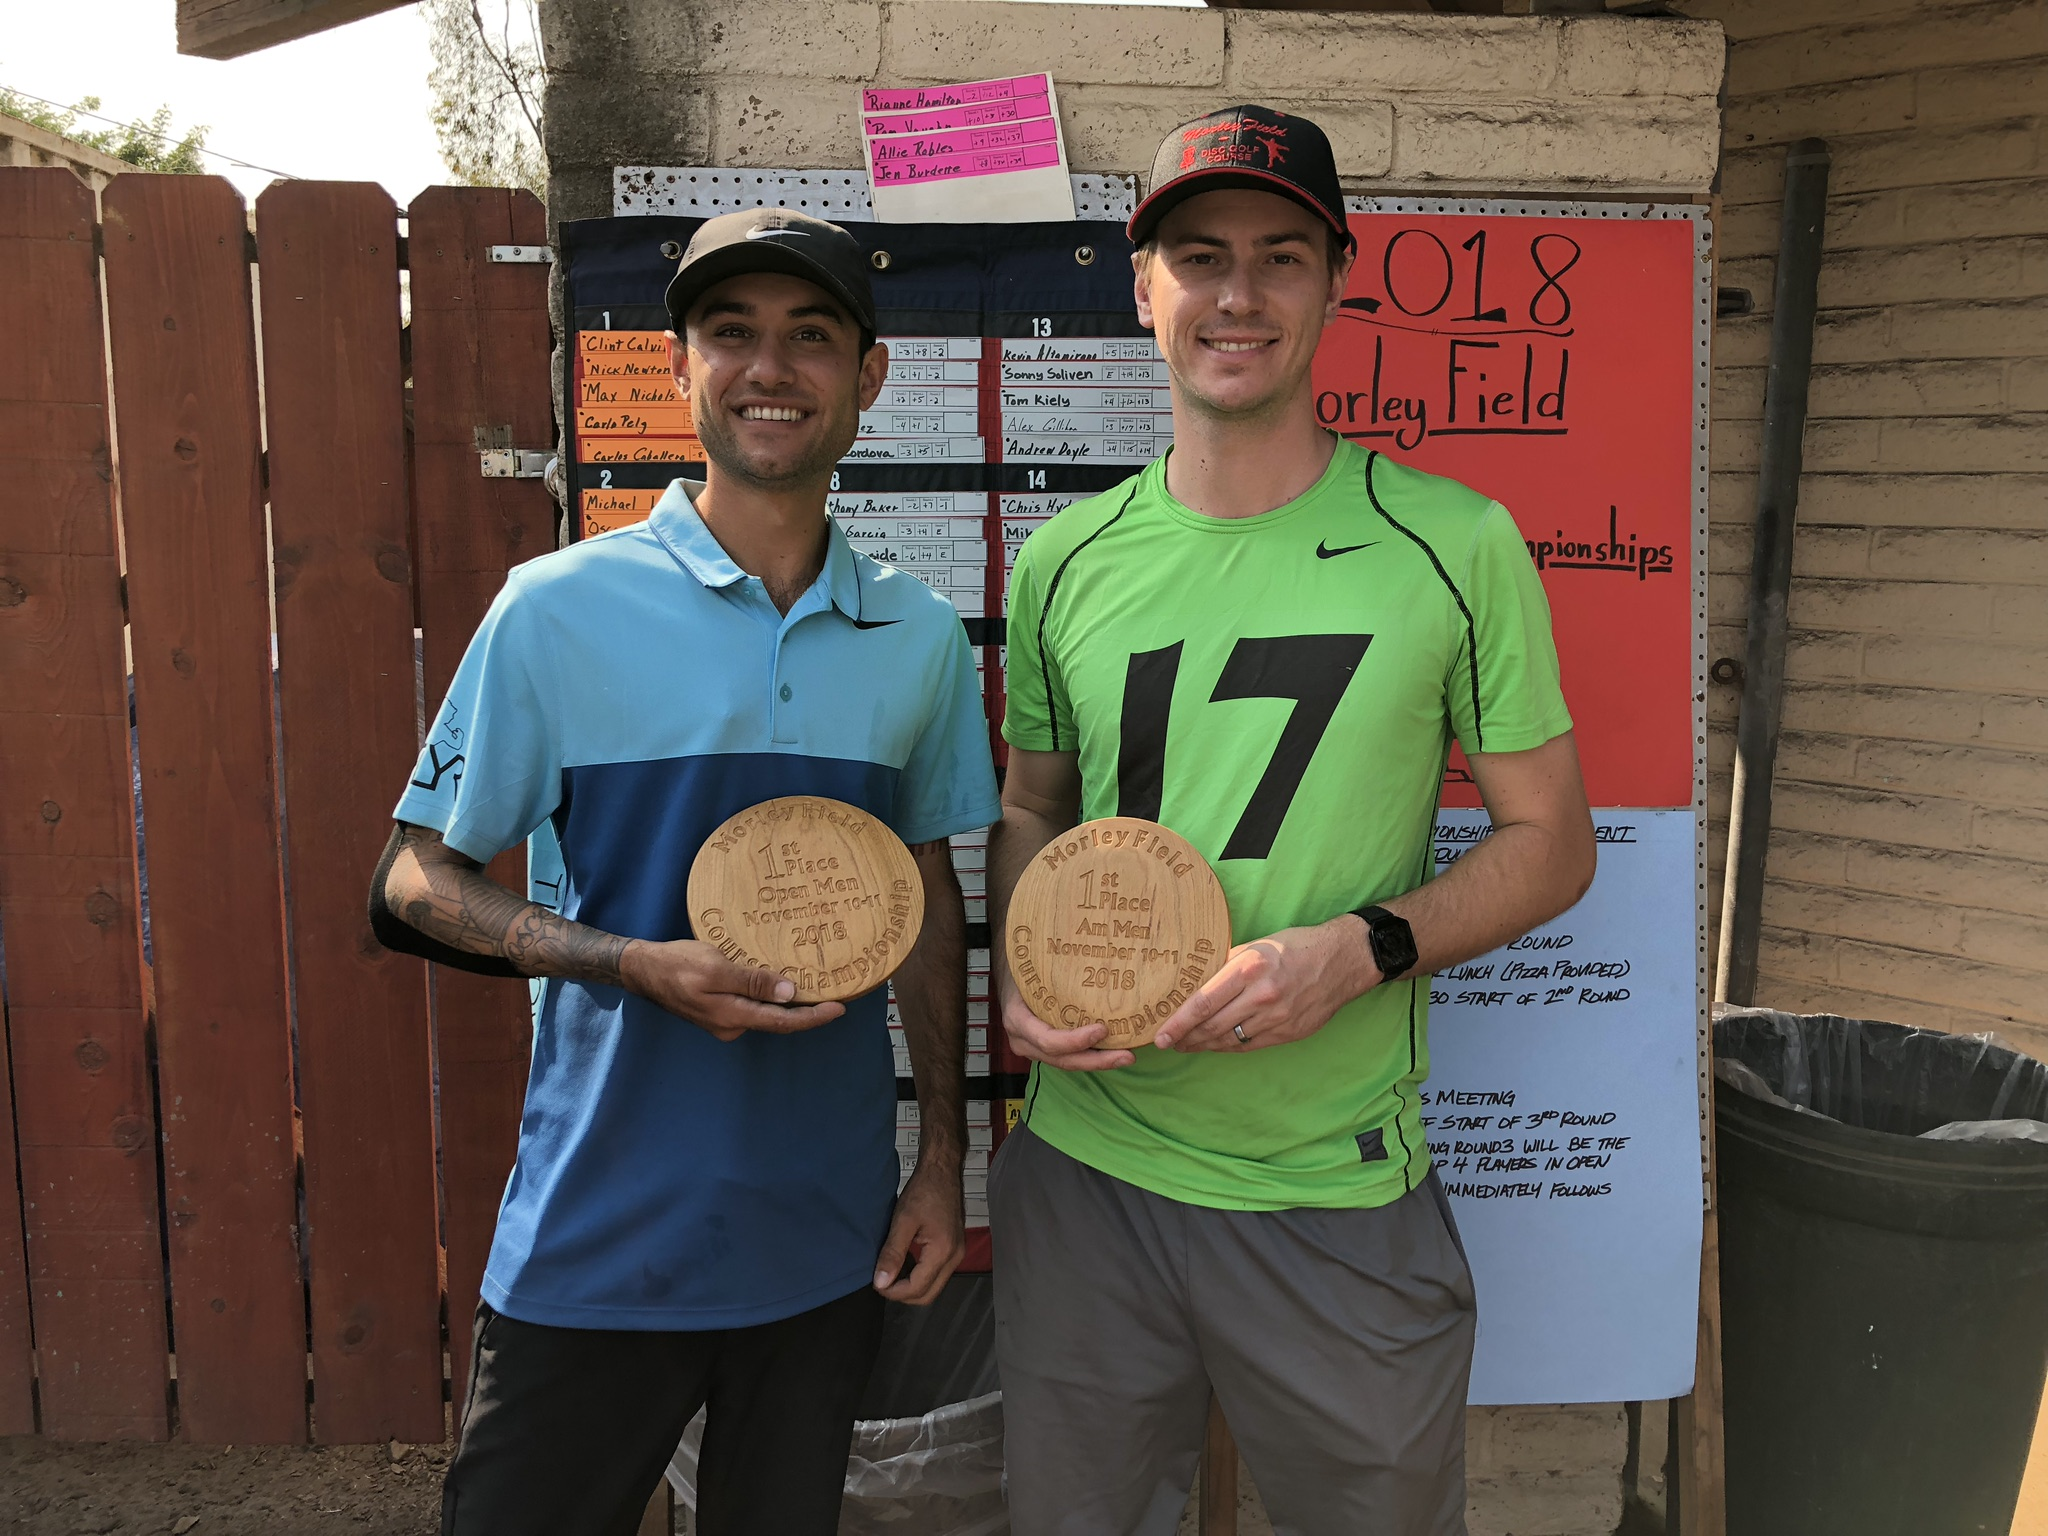 Clint Calvin (Course Champion) and Alex Gerlock (Am Champ)